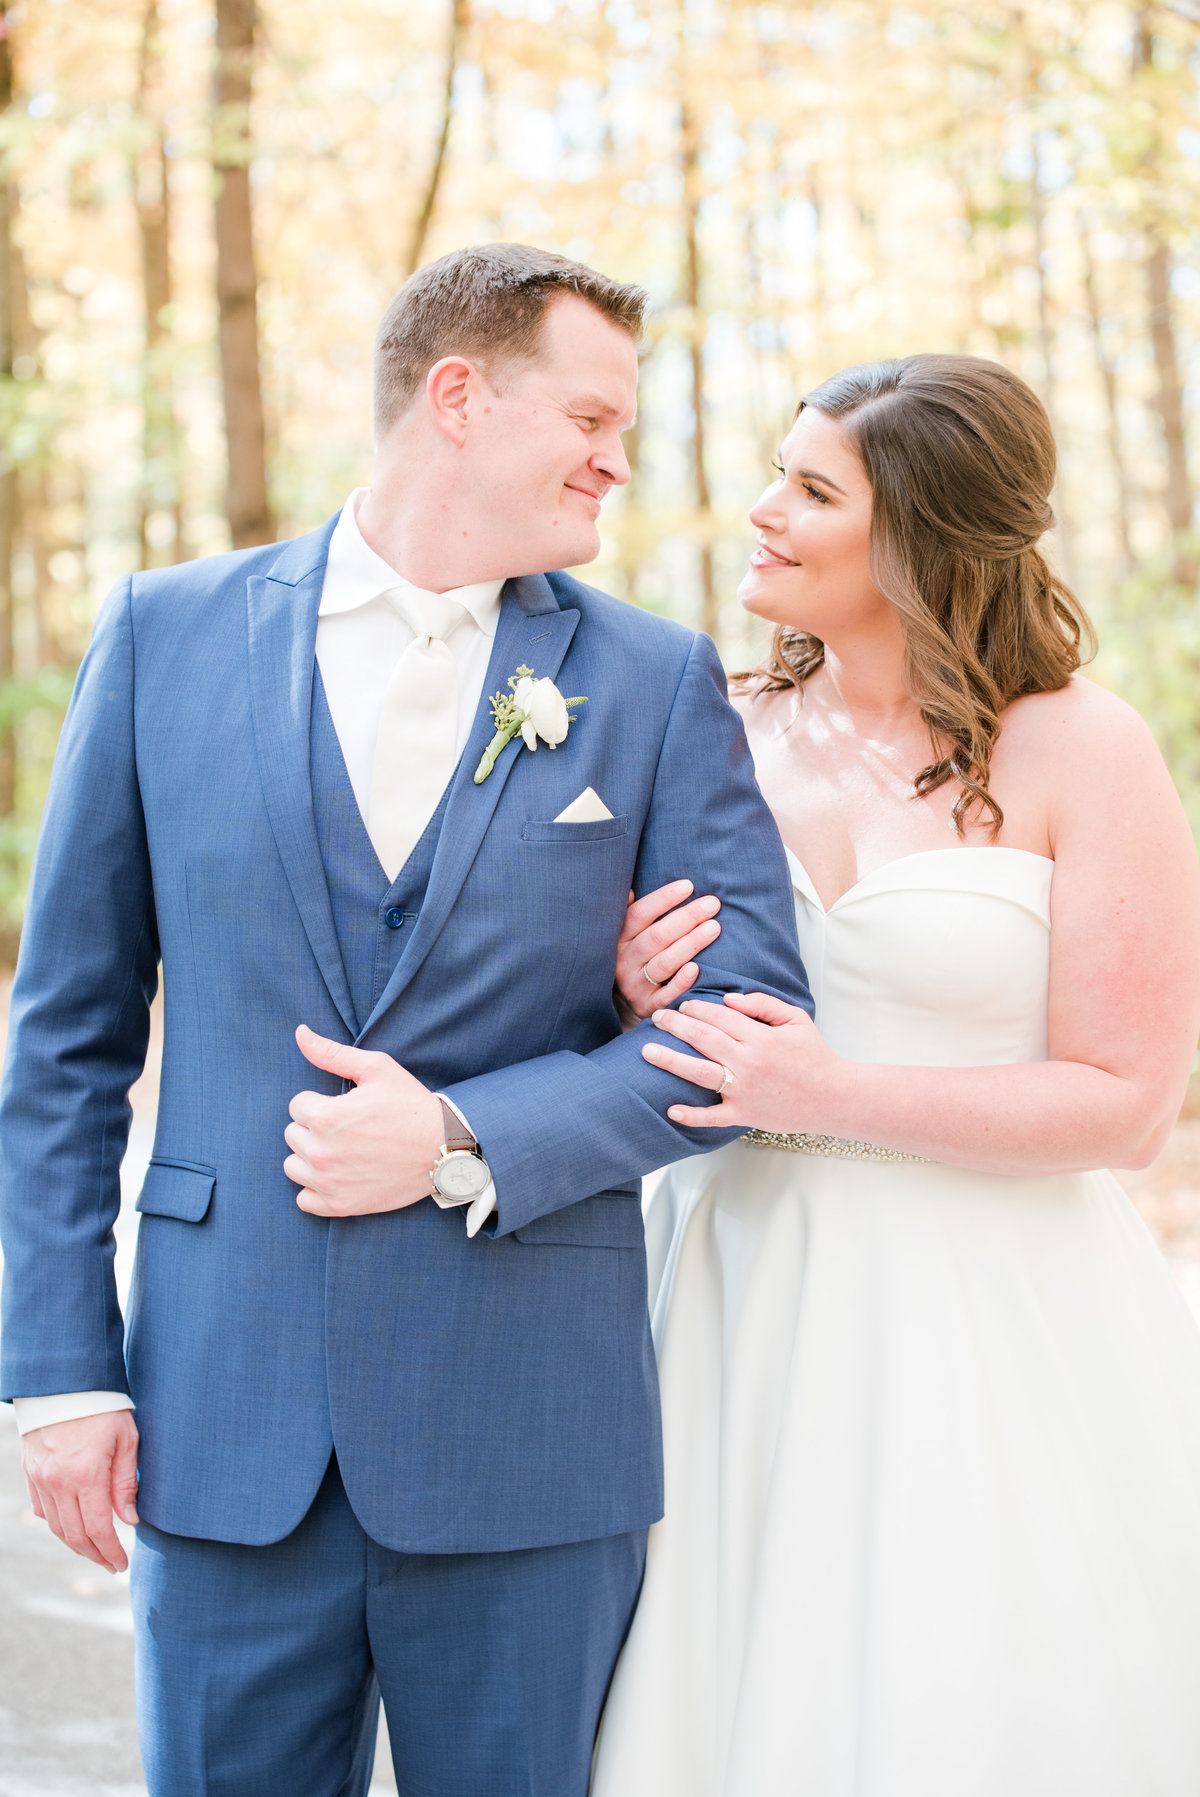 Newlywed Portraits Cait Potter Creative LLC Milltop Potters Bridge Noblesville Square Courthouse Wedding-14